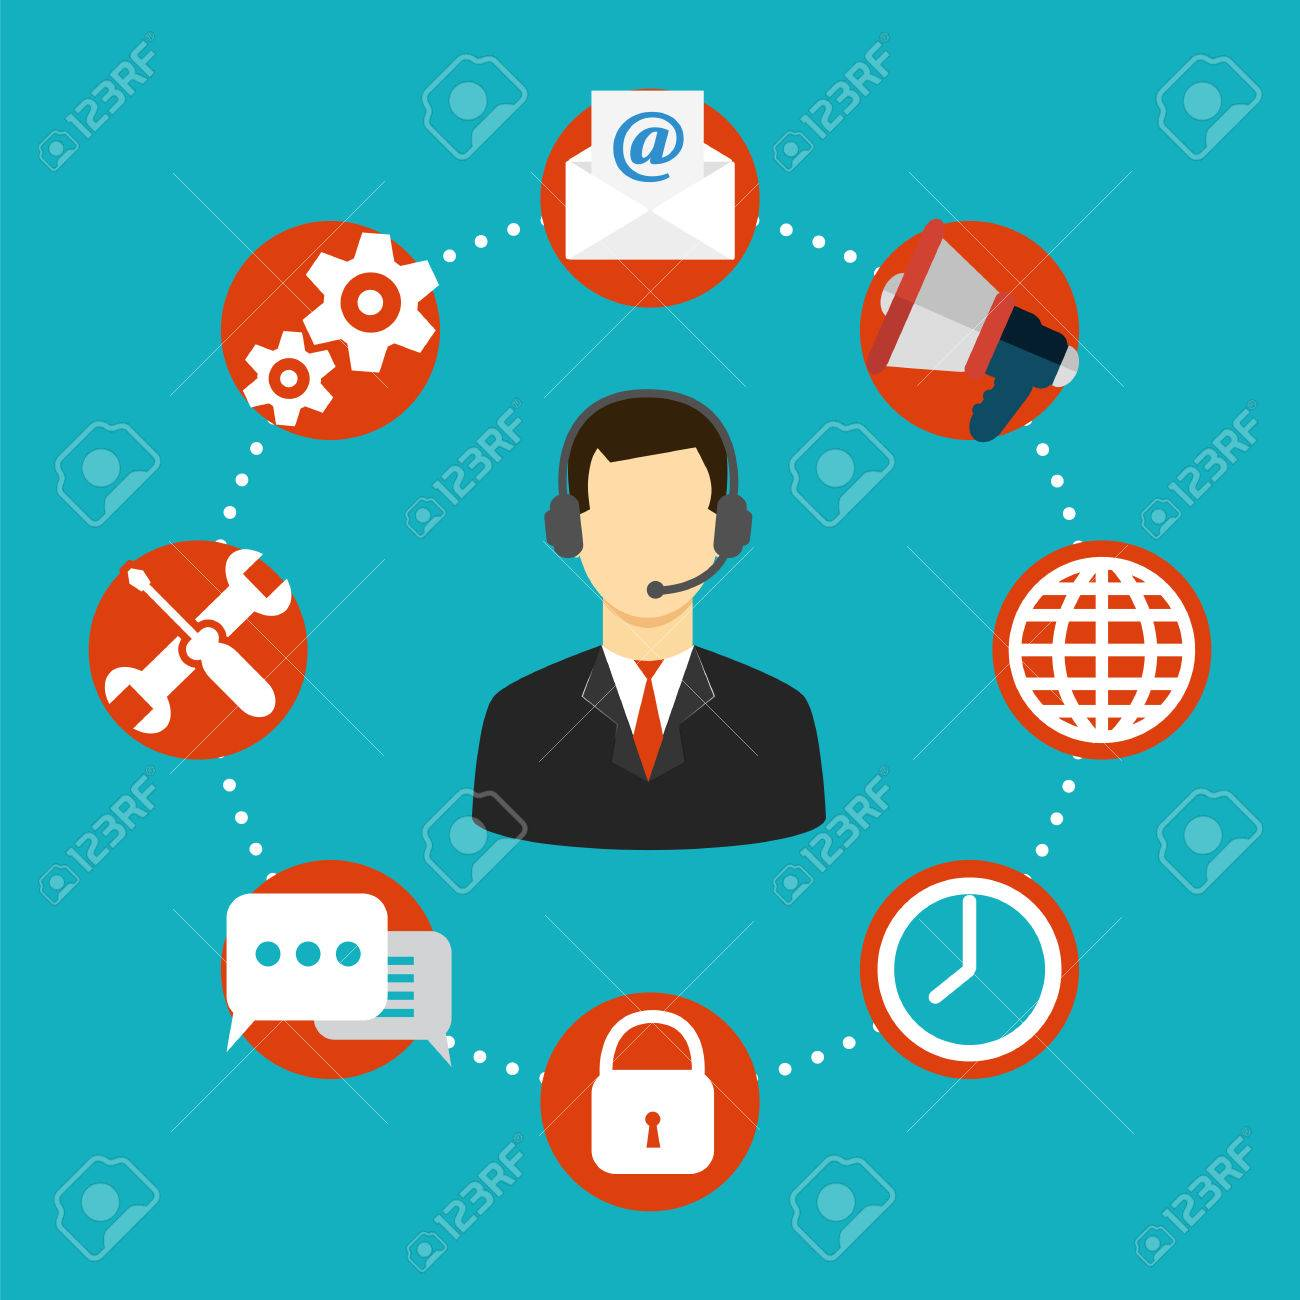 2dc4bd404f Icon in flat style support. Customer service icon Stock Vector - 42785823